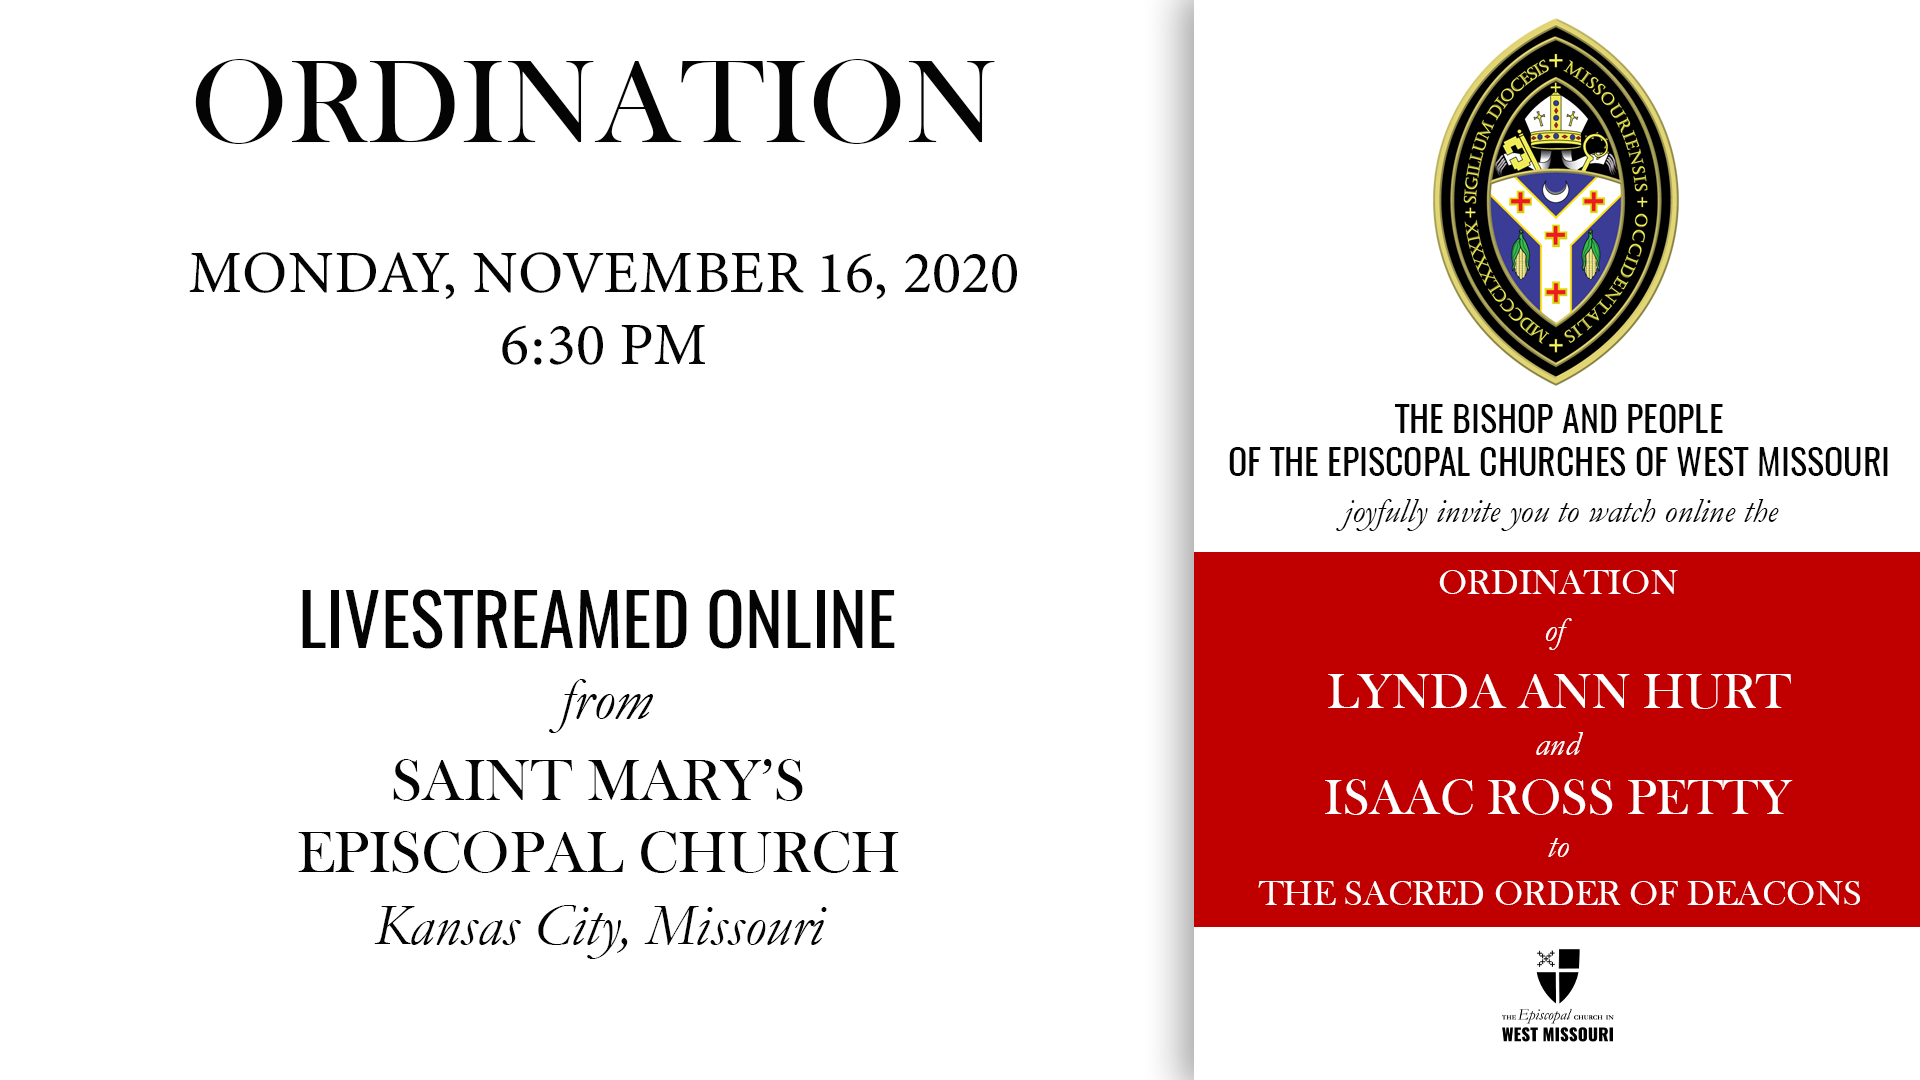 Live Broadcast — The Ordination of Lynda Ann Hurt & Isaac Ross Petty to The Sacred Order of Deacons